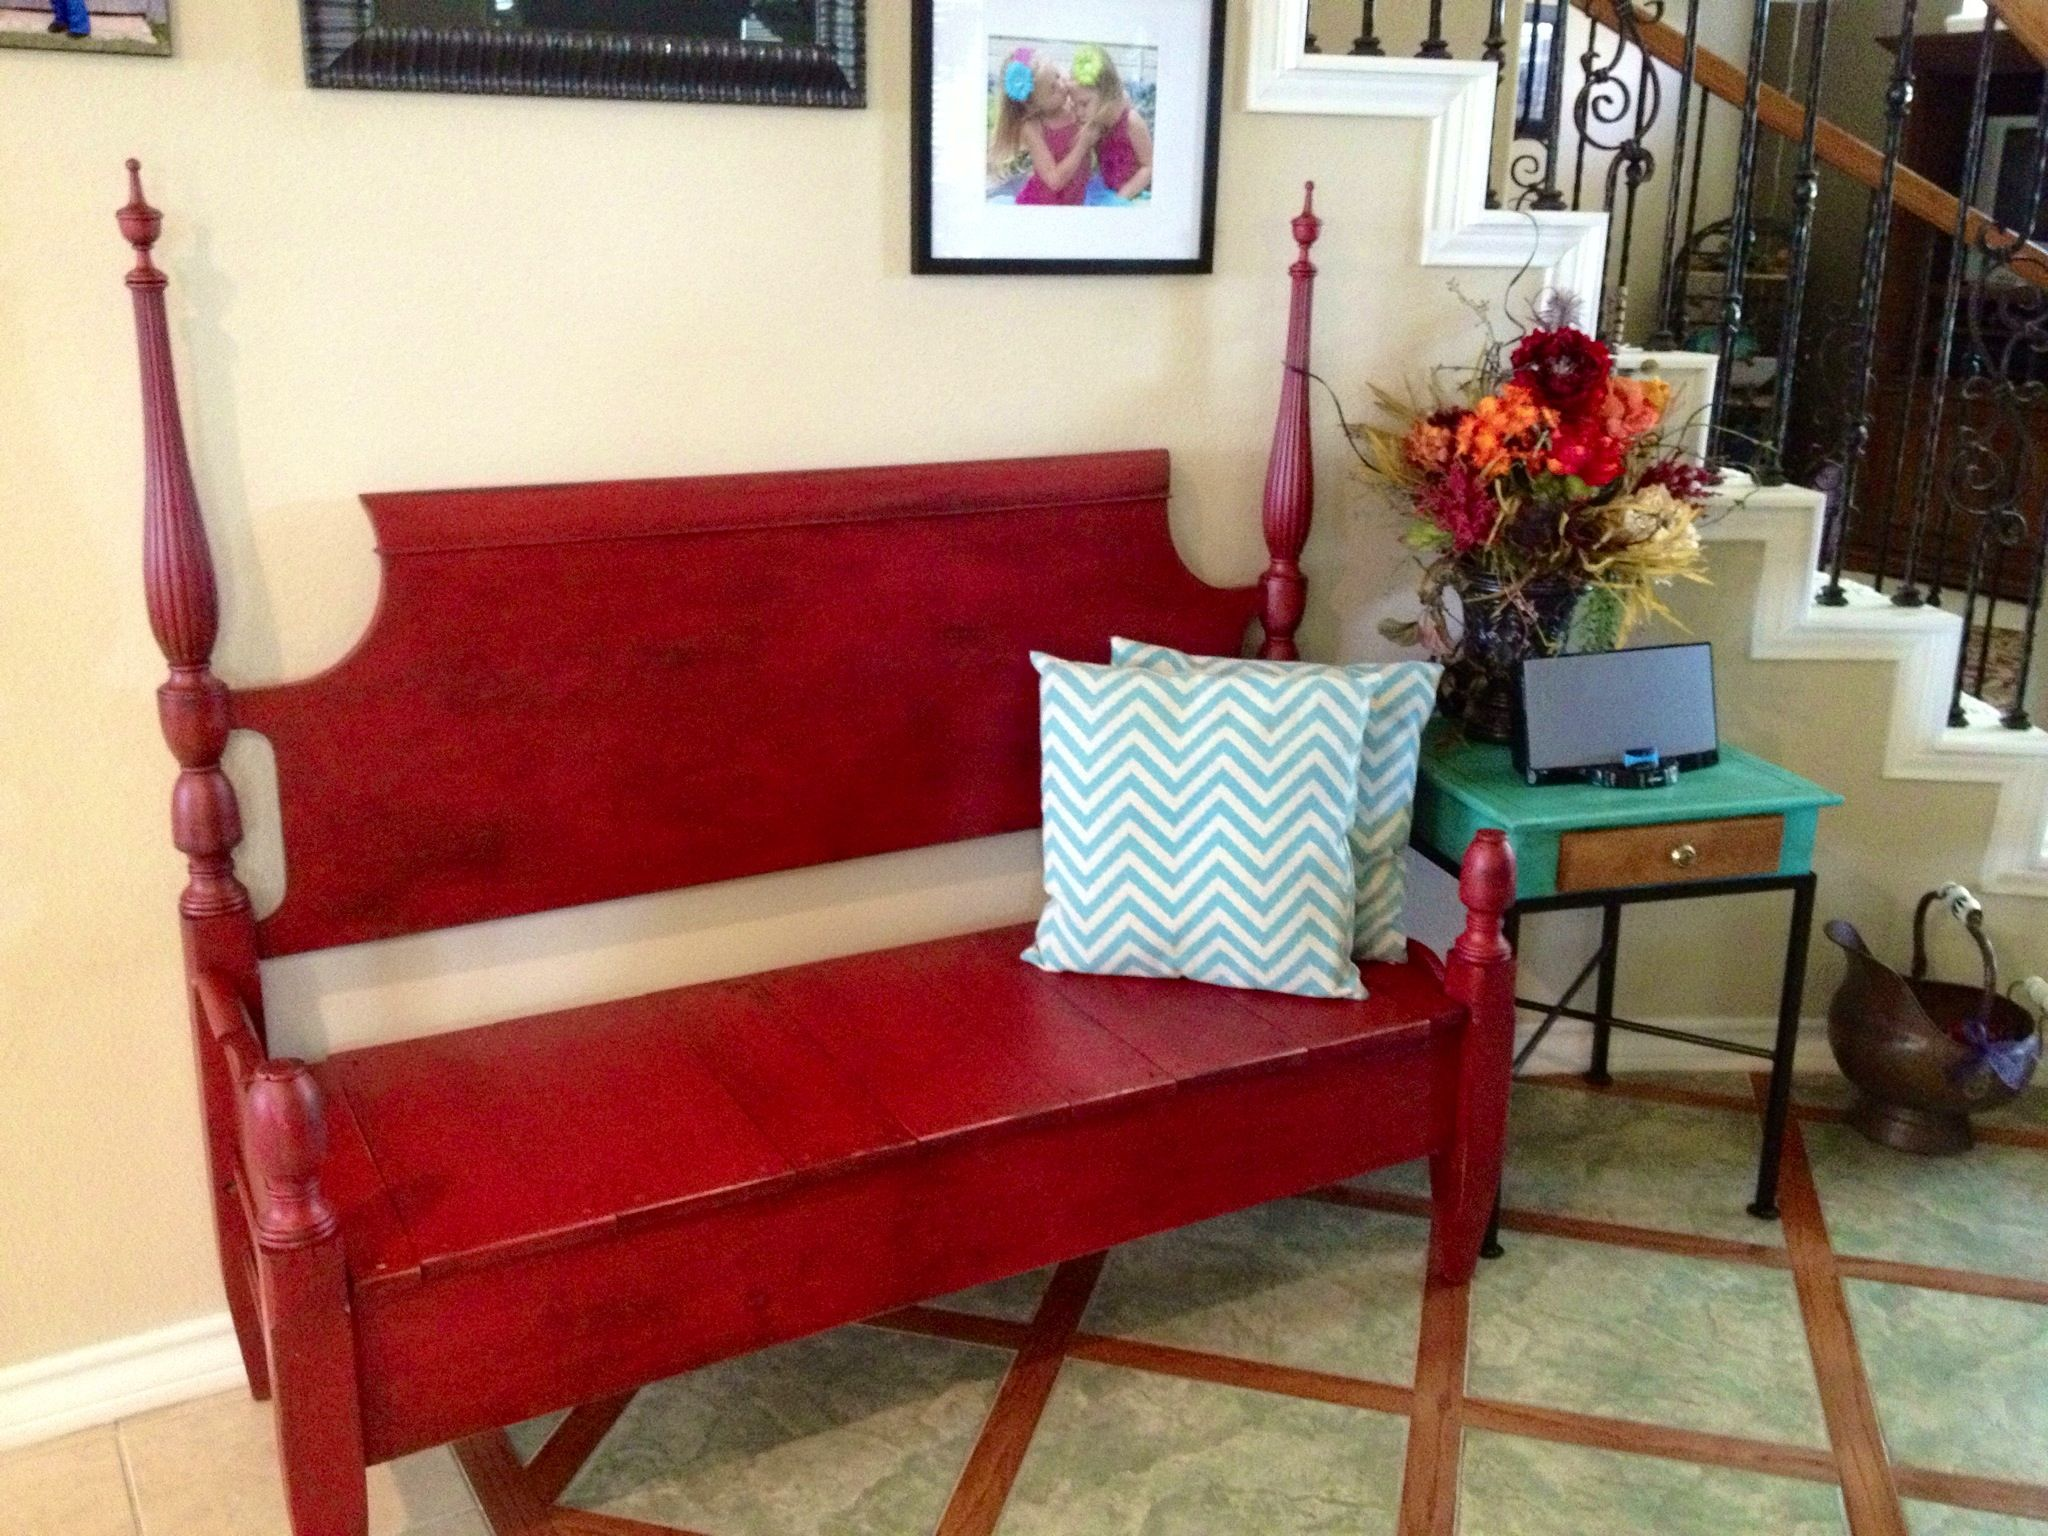 Headboard Bench Plans How To Make A Bench From An Old Headboard Footboard Decorating